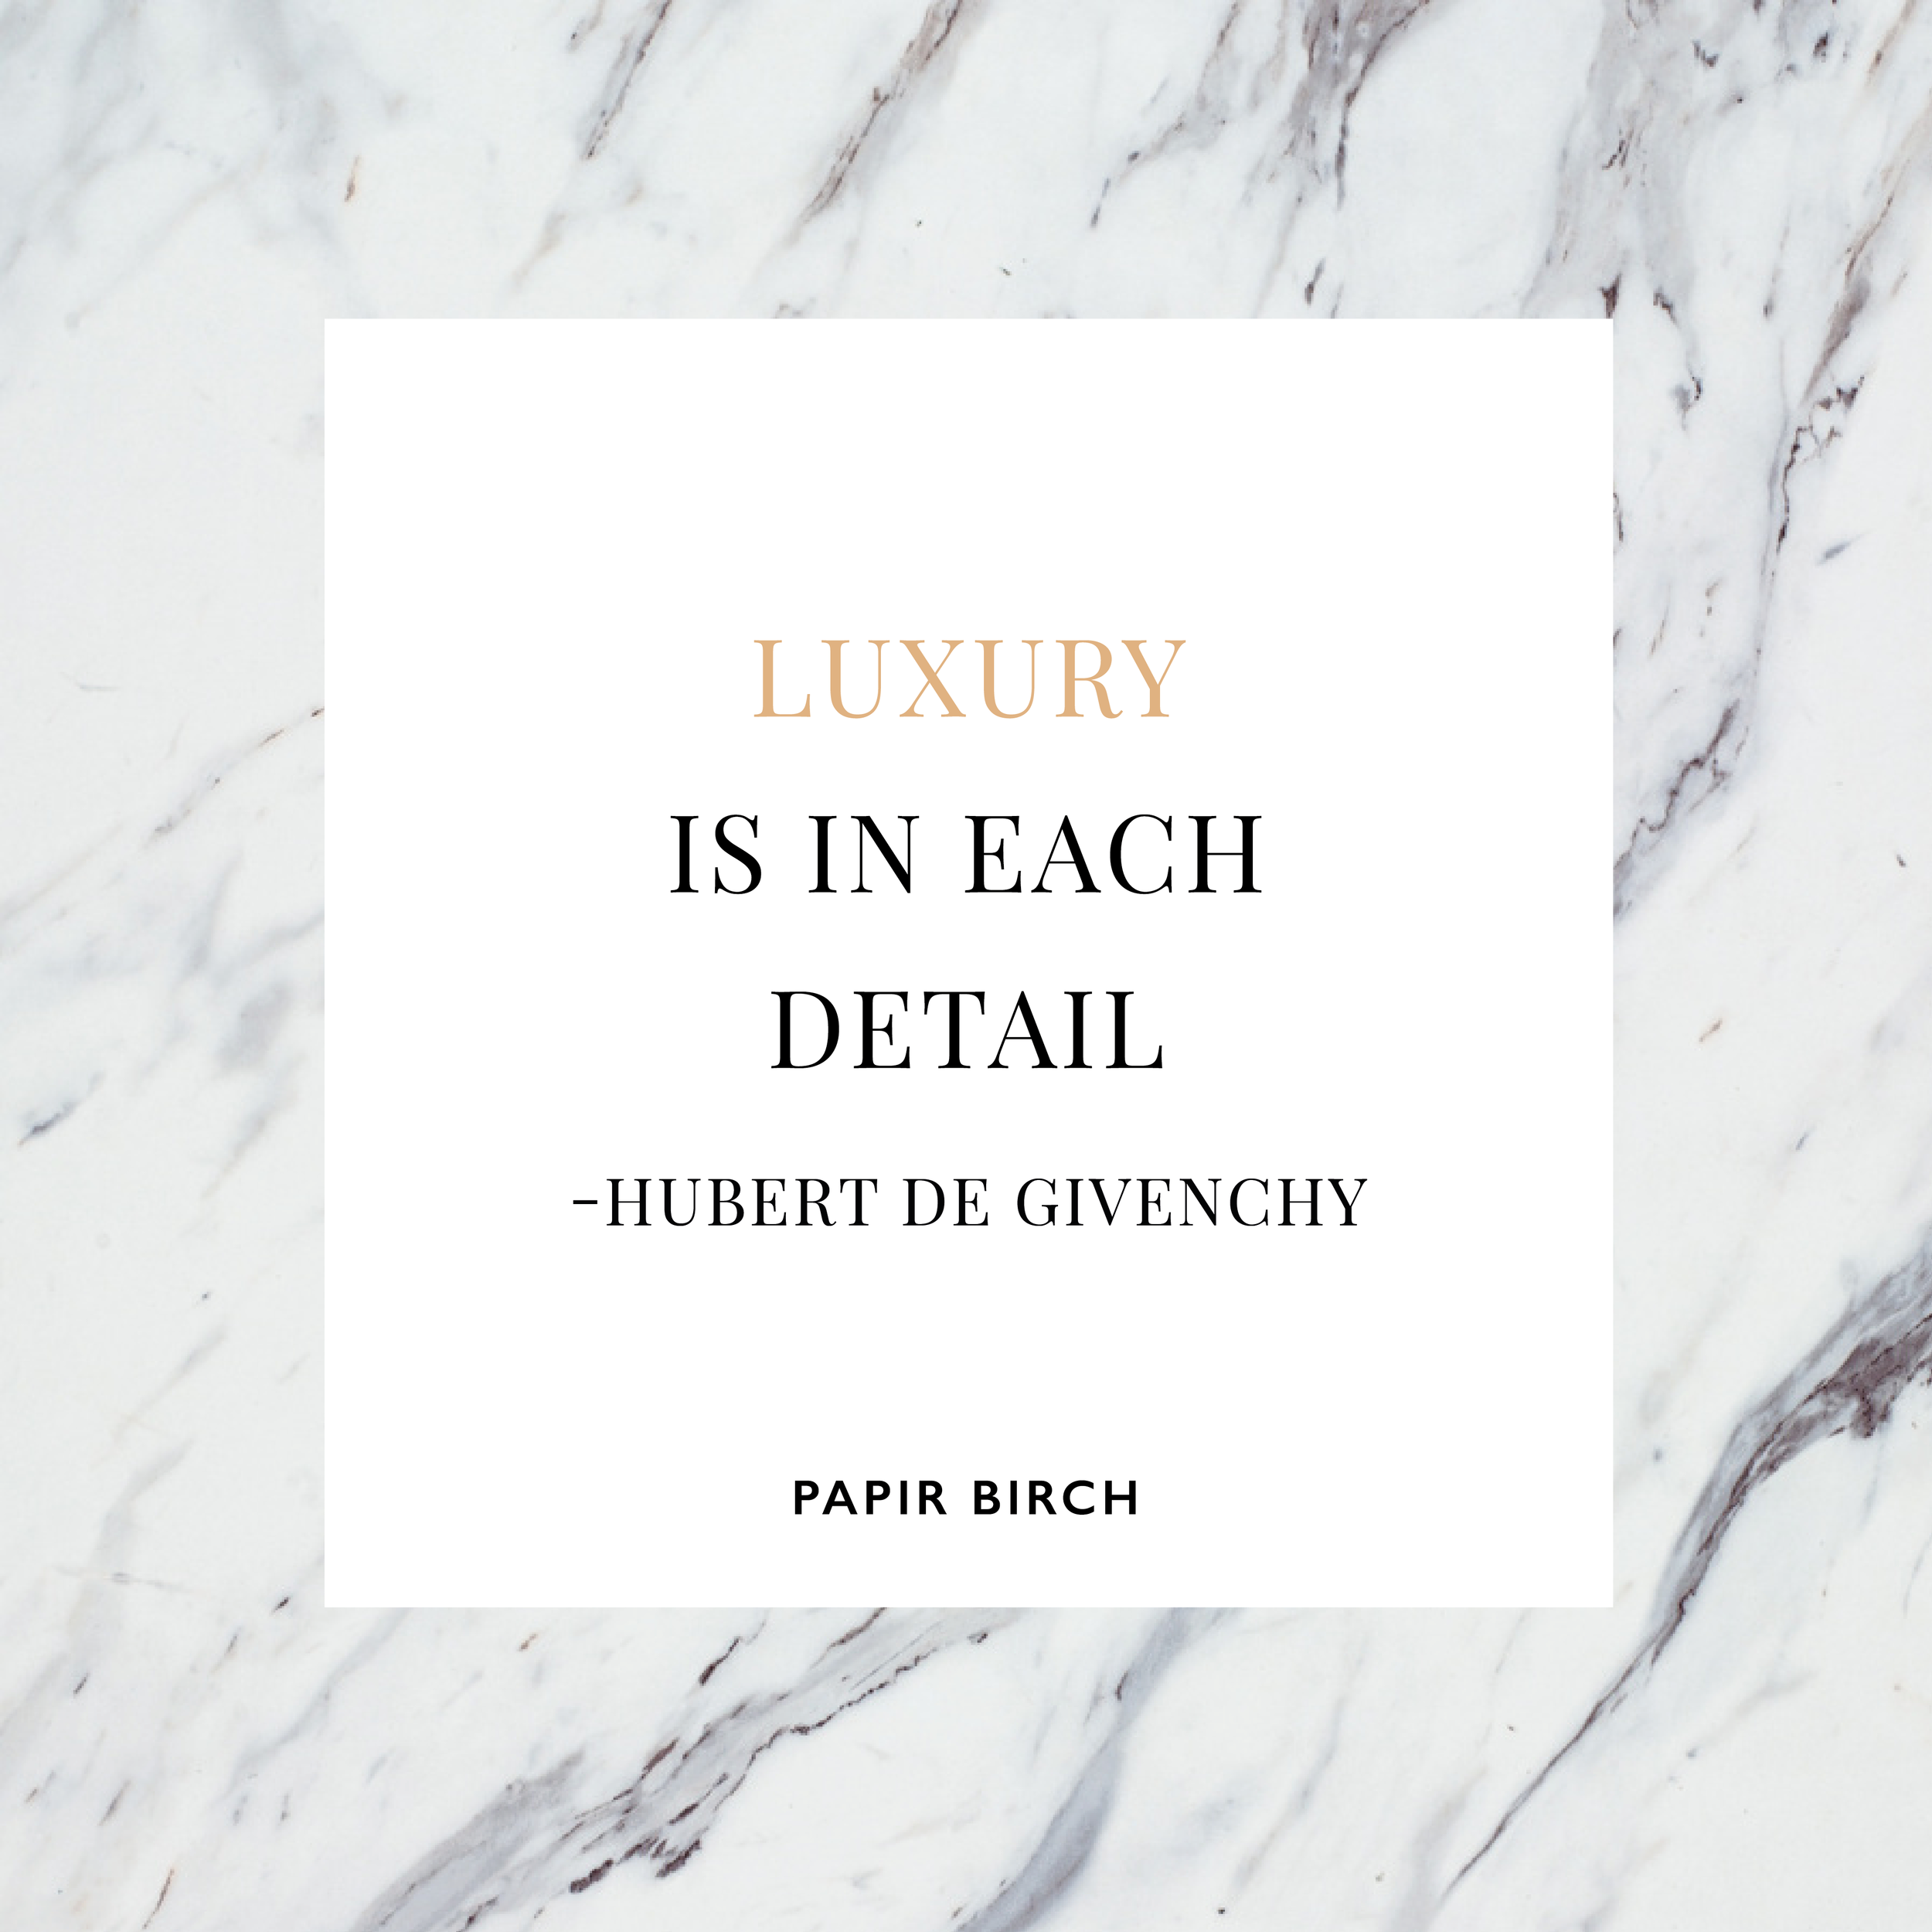 PapirBirch-Social-Quotes-Luxury-0117-01.png